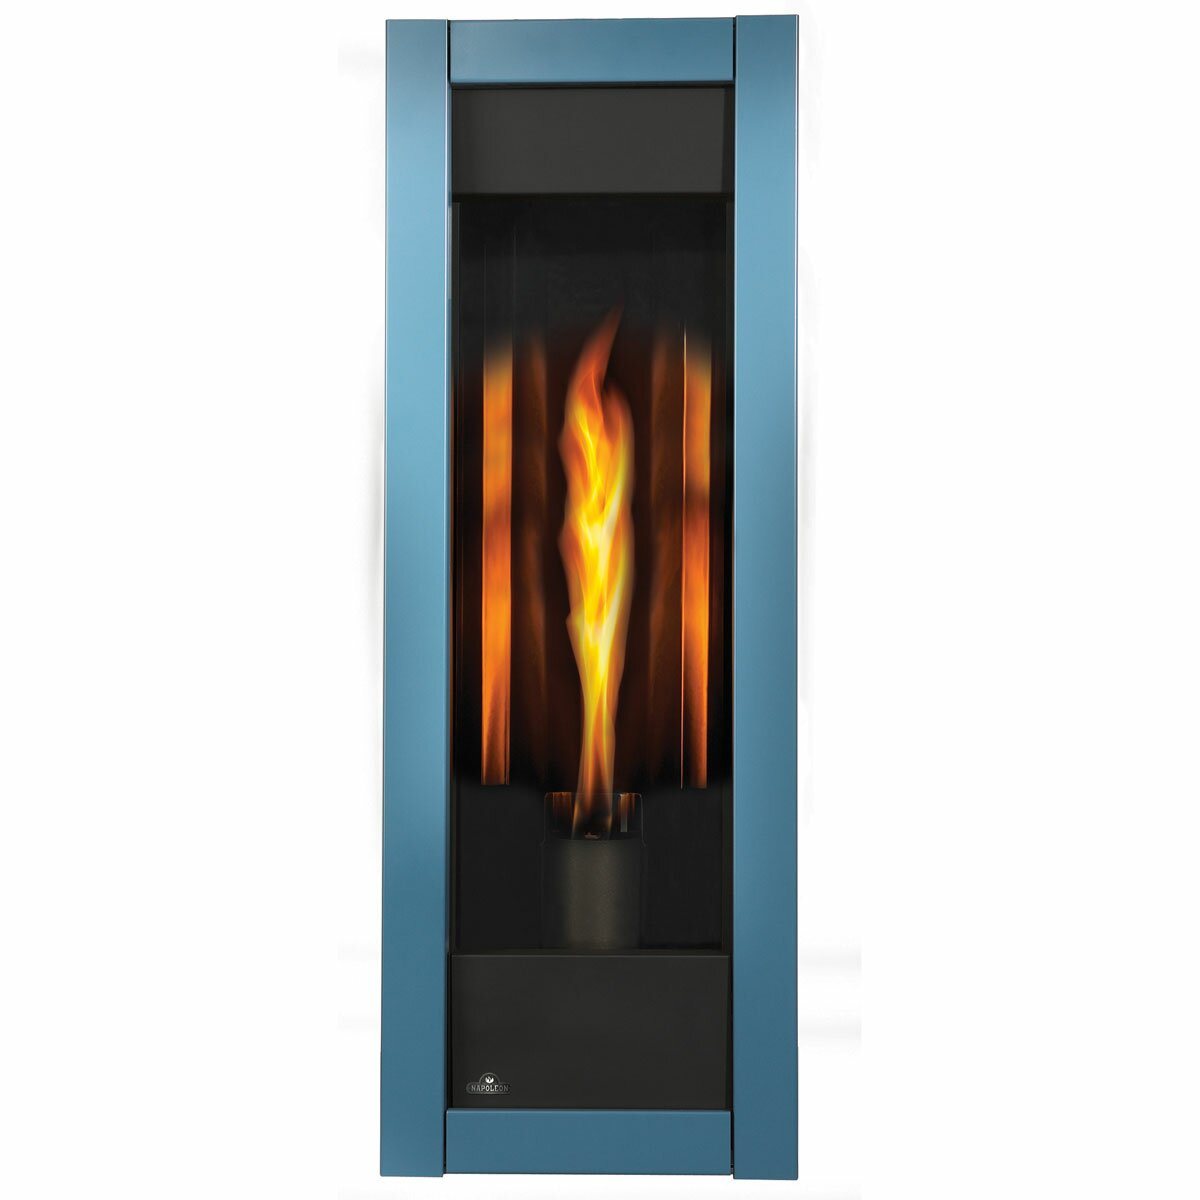 Napoleon The Torch Direct Vent Wall Mount Gas Fireplace Reviews Wayfair